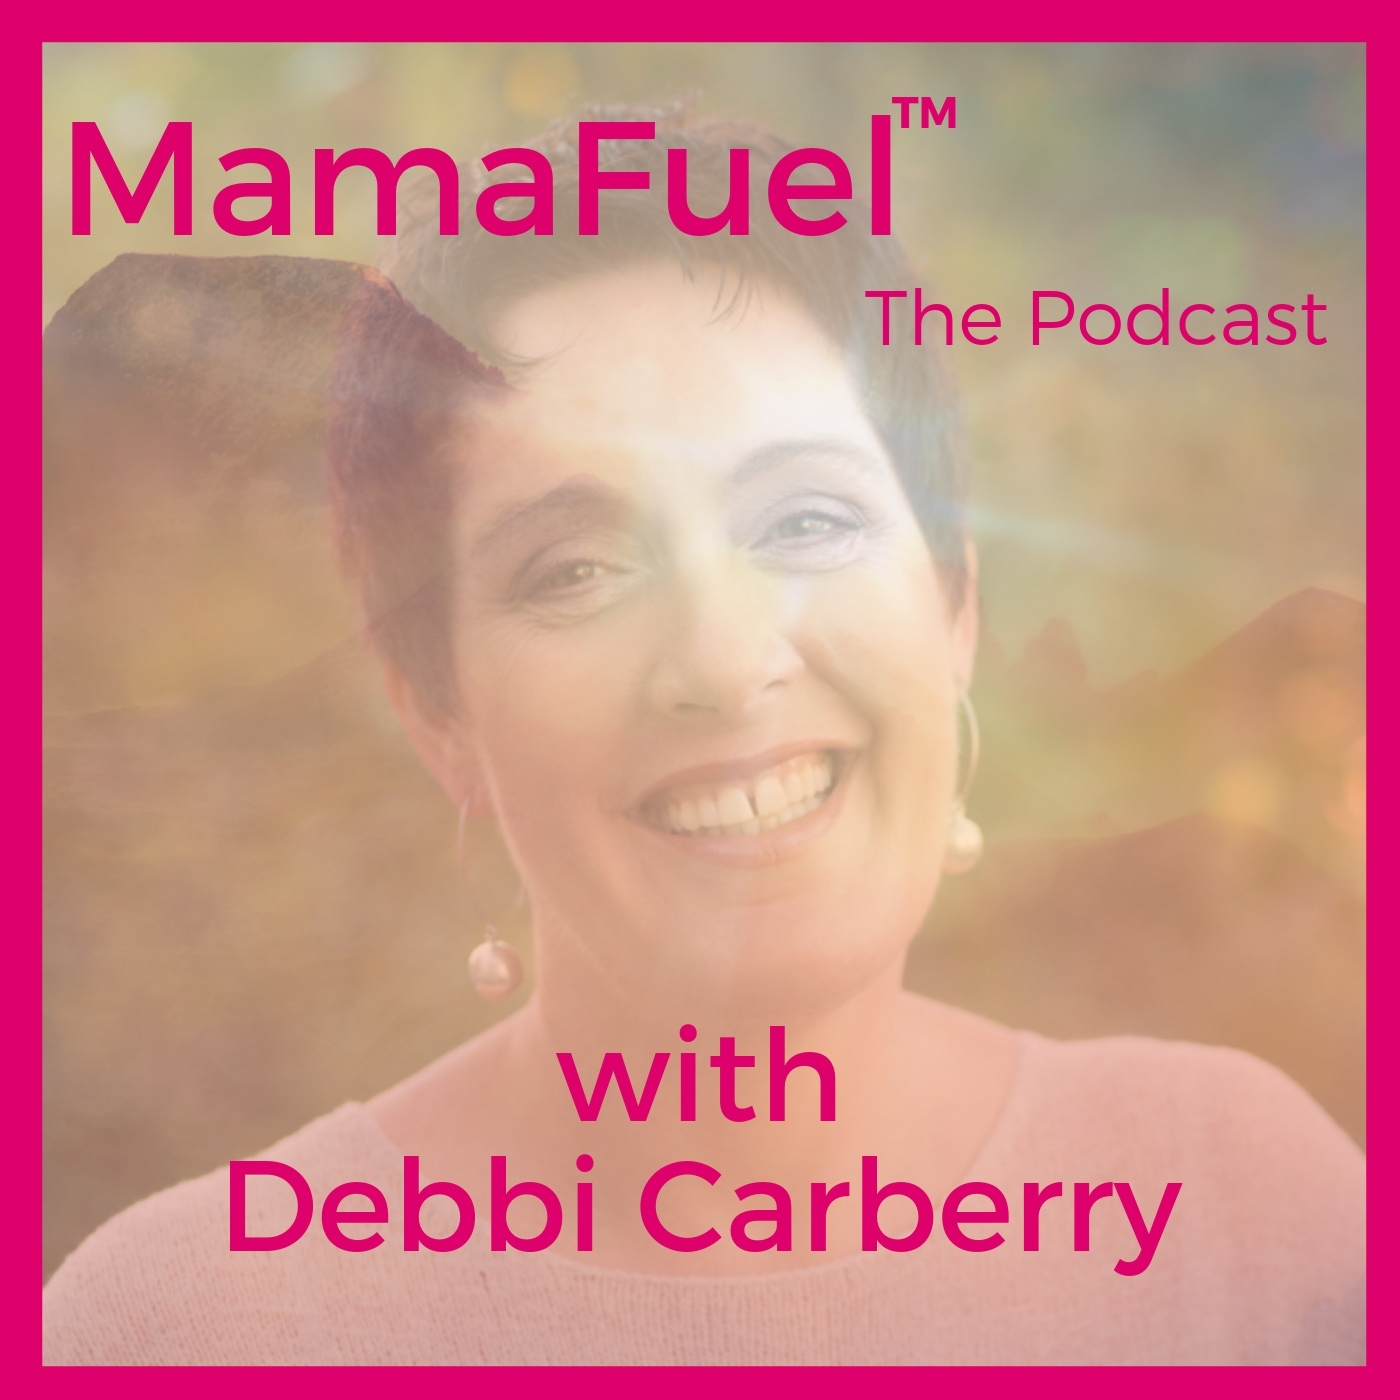 EP040: Debbi Carberry on self-acceptance, self-compassion and the value of building resilience